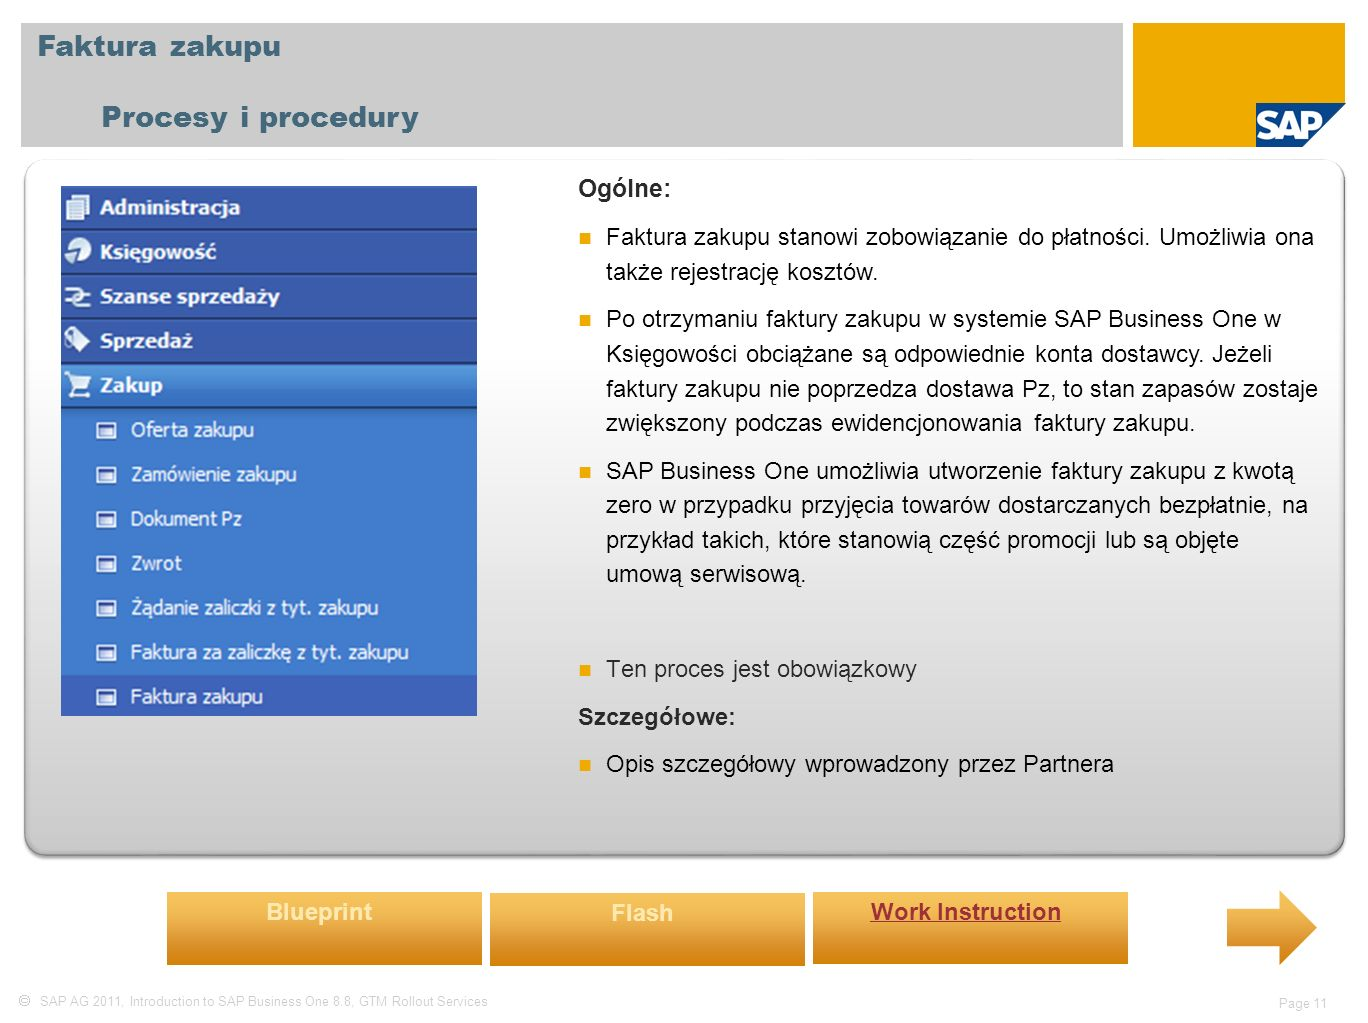  SAP AG 2011, Introduction to SAP Business One 8.8, GTM Rollout Services Page 11 Faktura zakupu Procesy i procedury Ogólne: Faktura zakupu stanowi zobowiązanie do płatności.